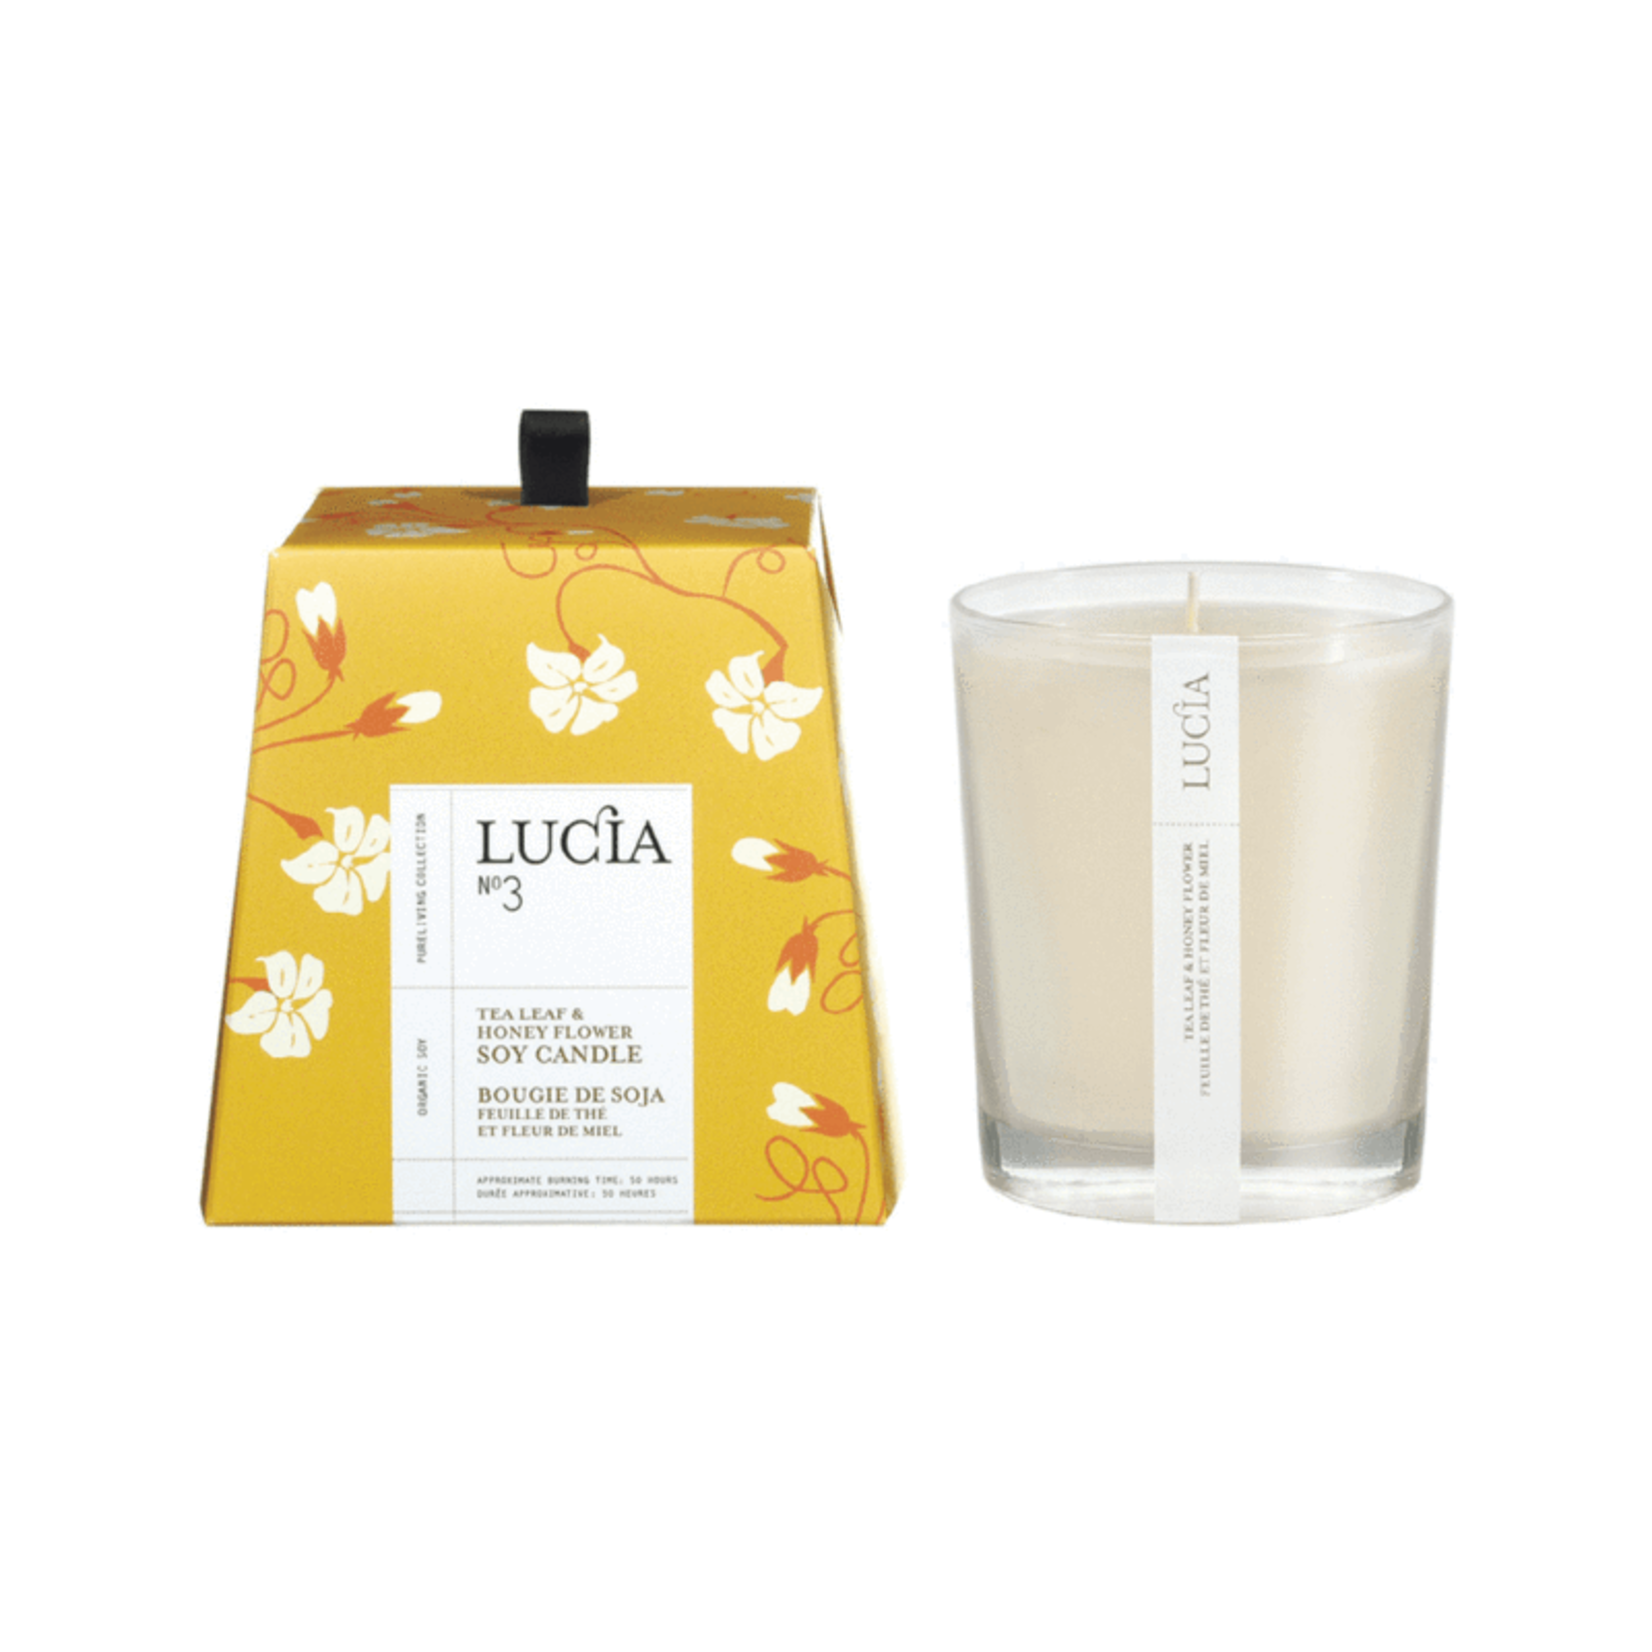 Lucia LUCIA Bougie 20H no3